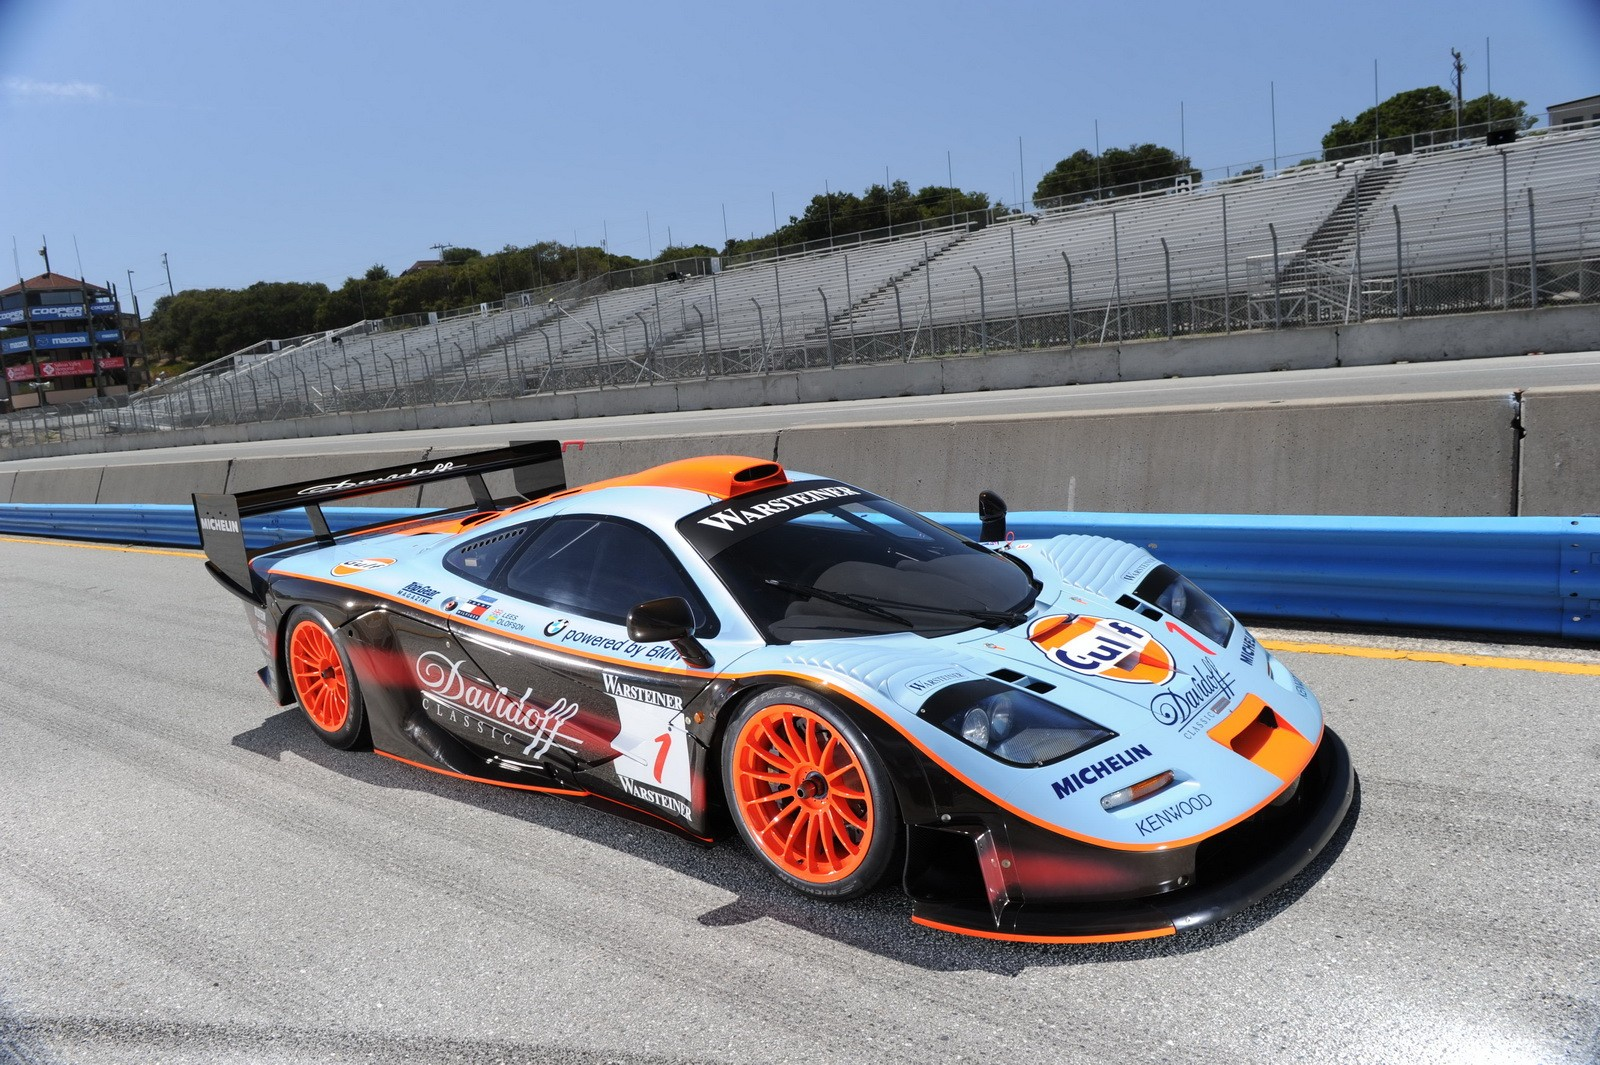 mclaren f1 gtr longtail is a fine racecar looking for a. Black Bedroom Furniture Sets. Home Design Ideas